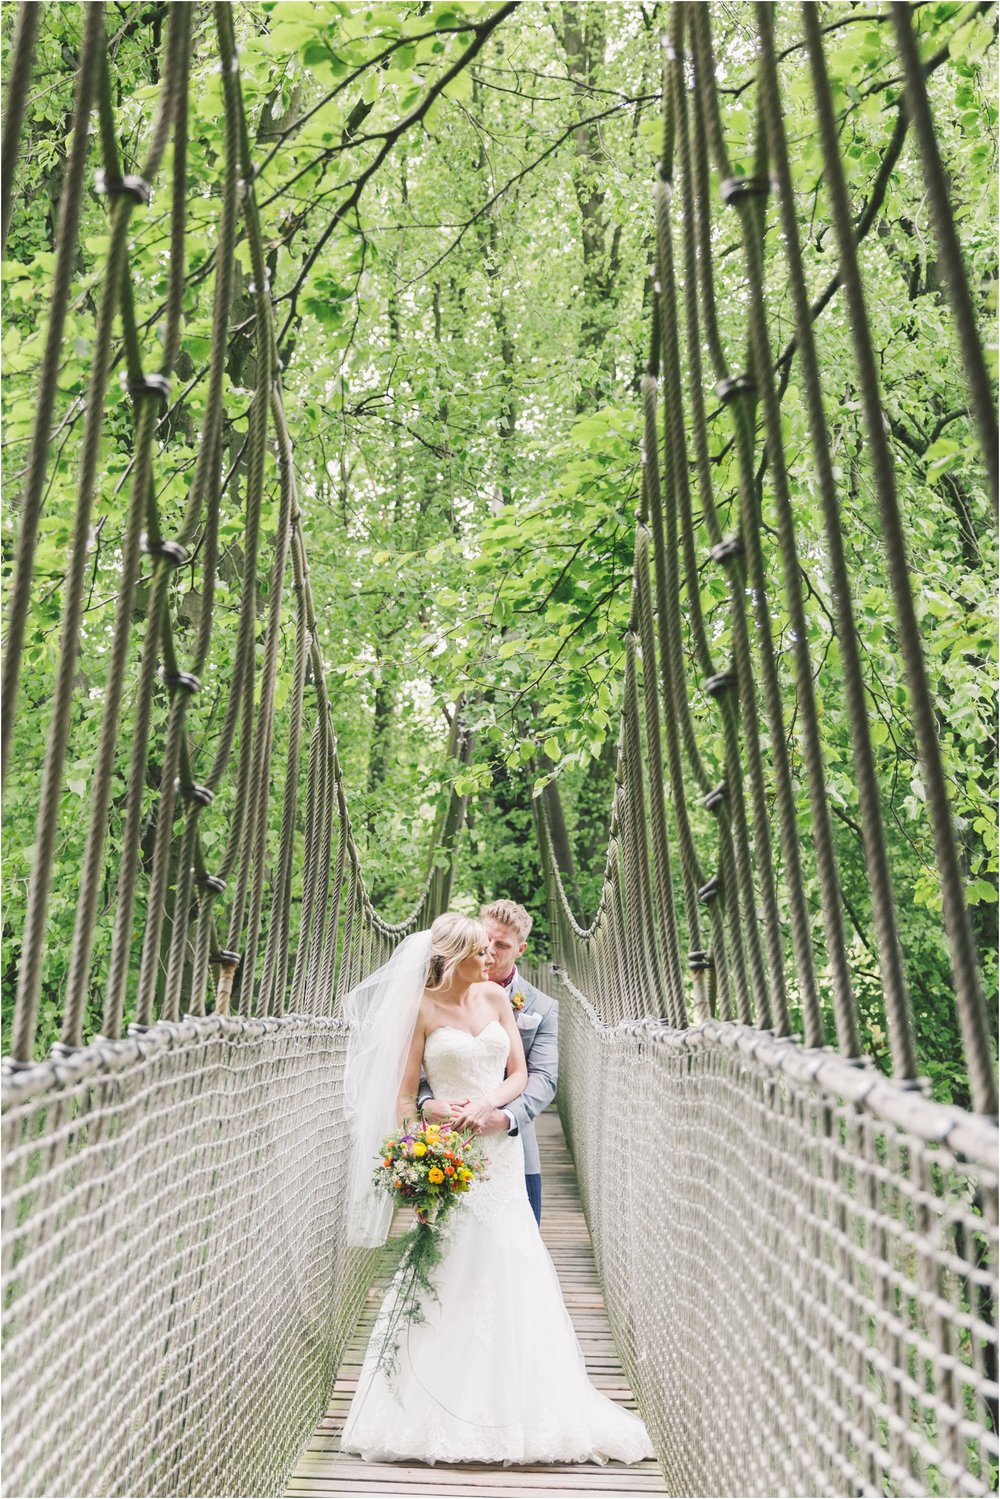 eve.photography.relaxed.creative.wedding.destination._0281.jpg